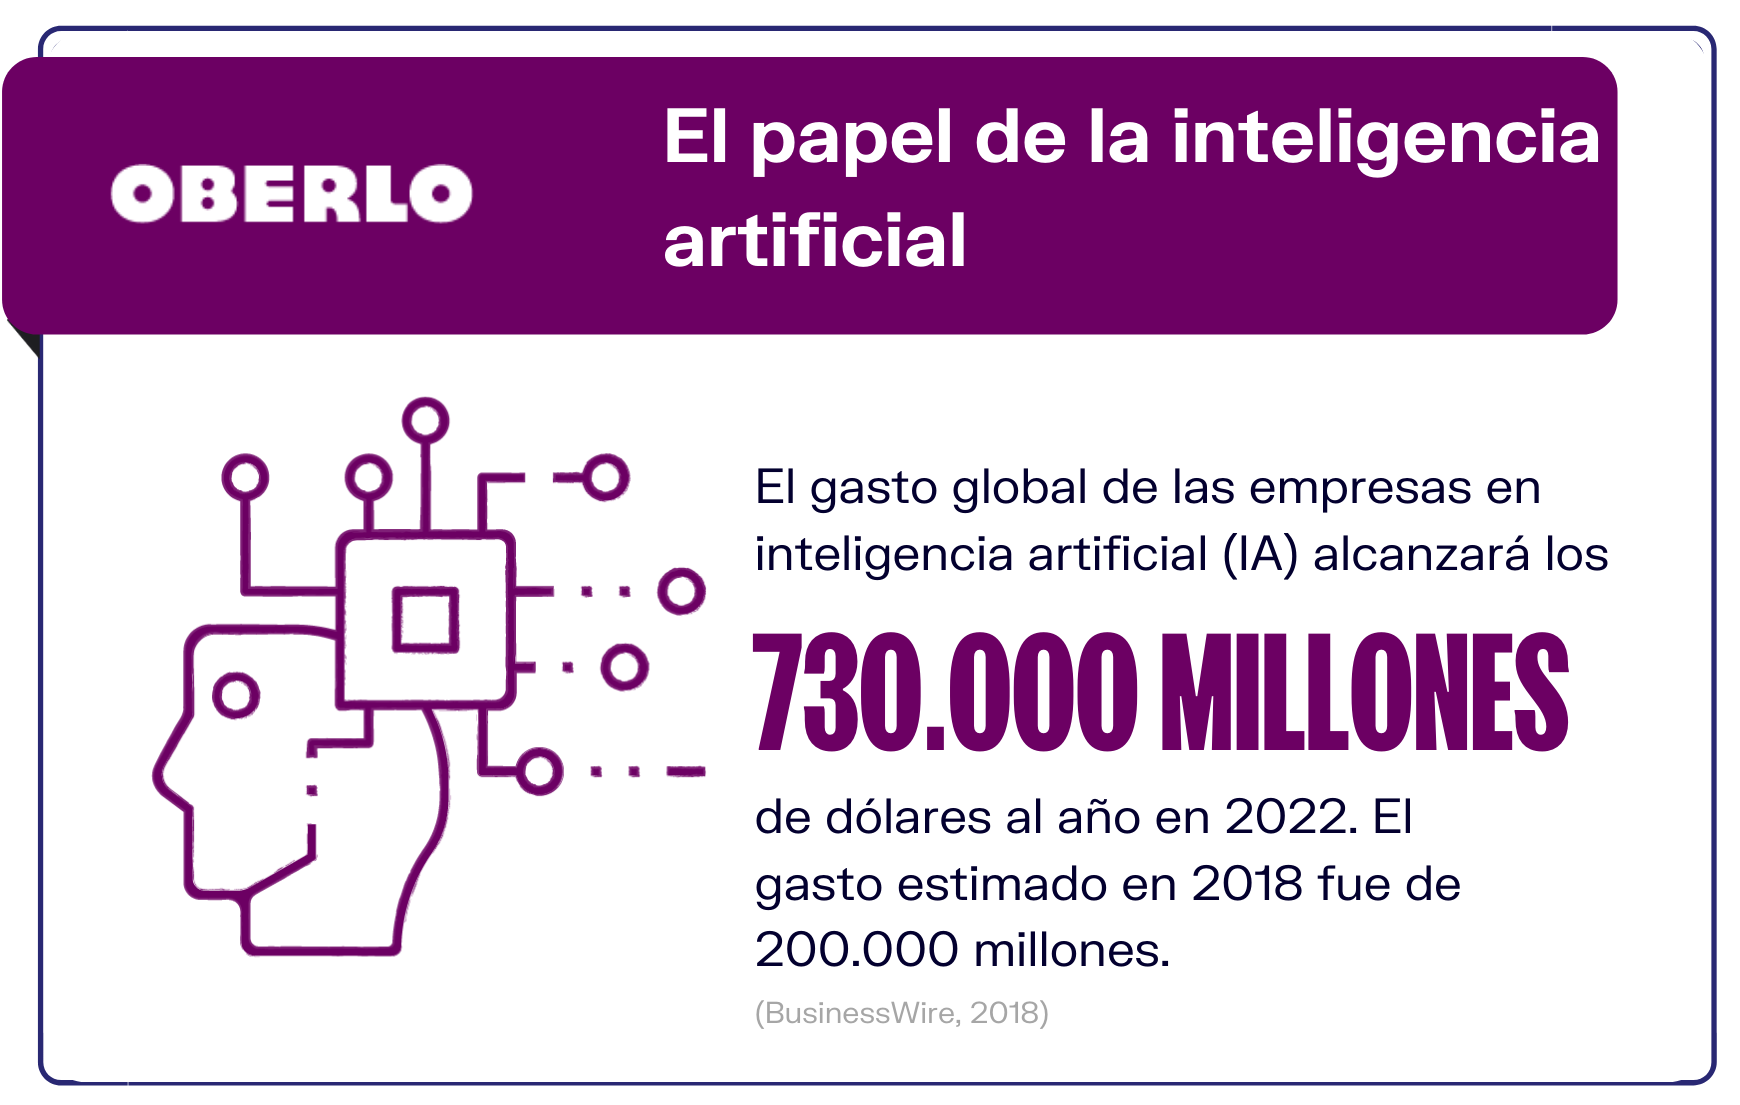 7-Nuevas-tendencias-del-ecommerce-Rol-de-la-Inteligencia-Artificial